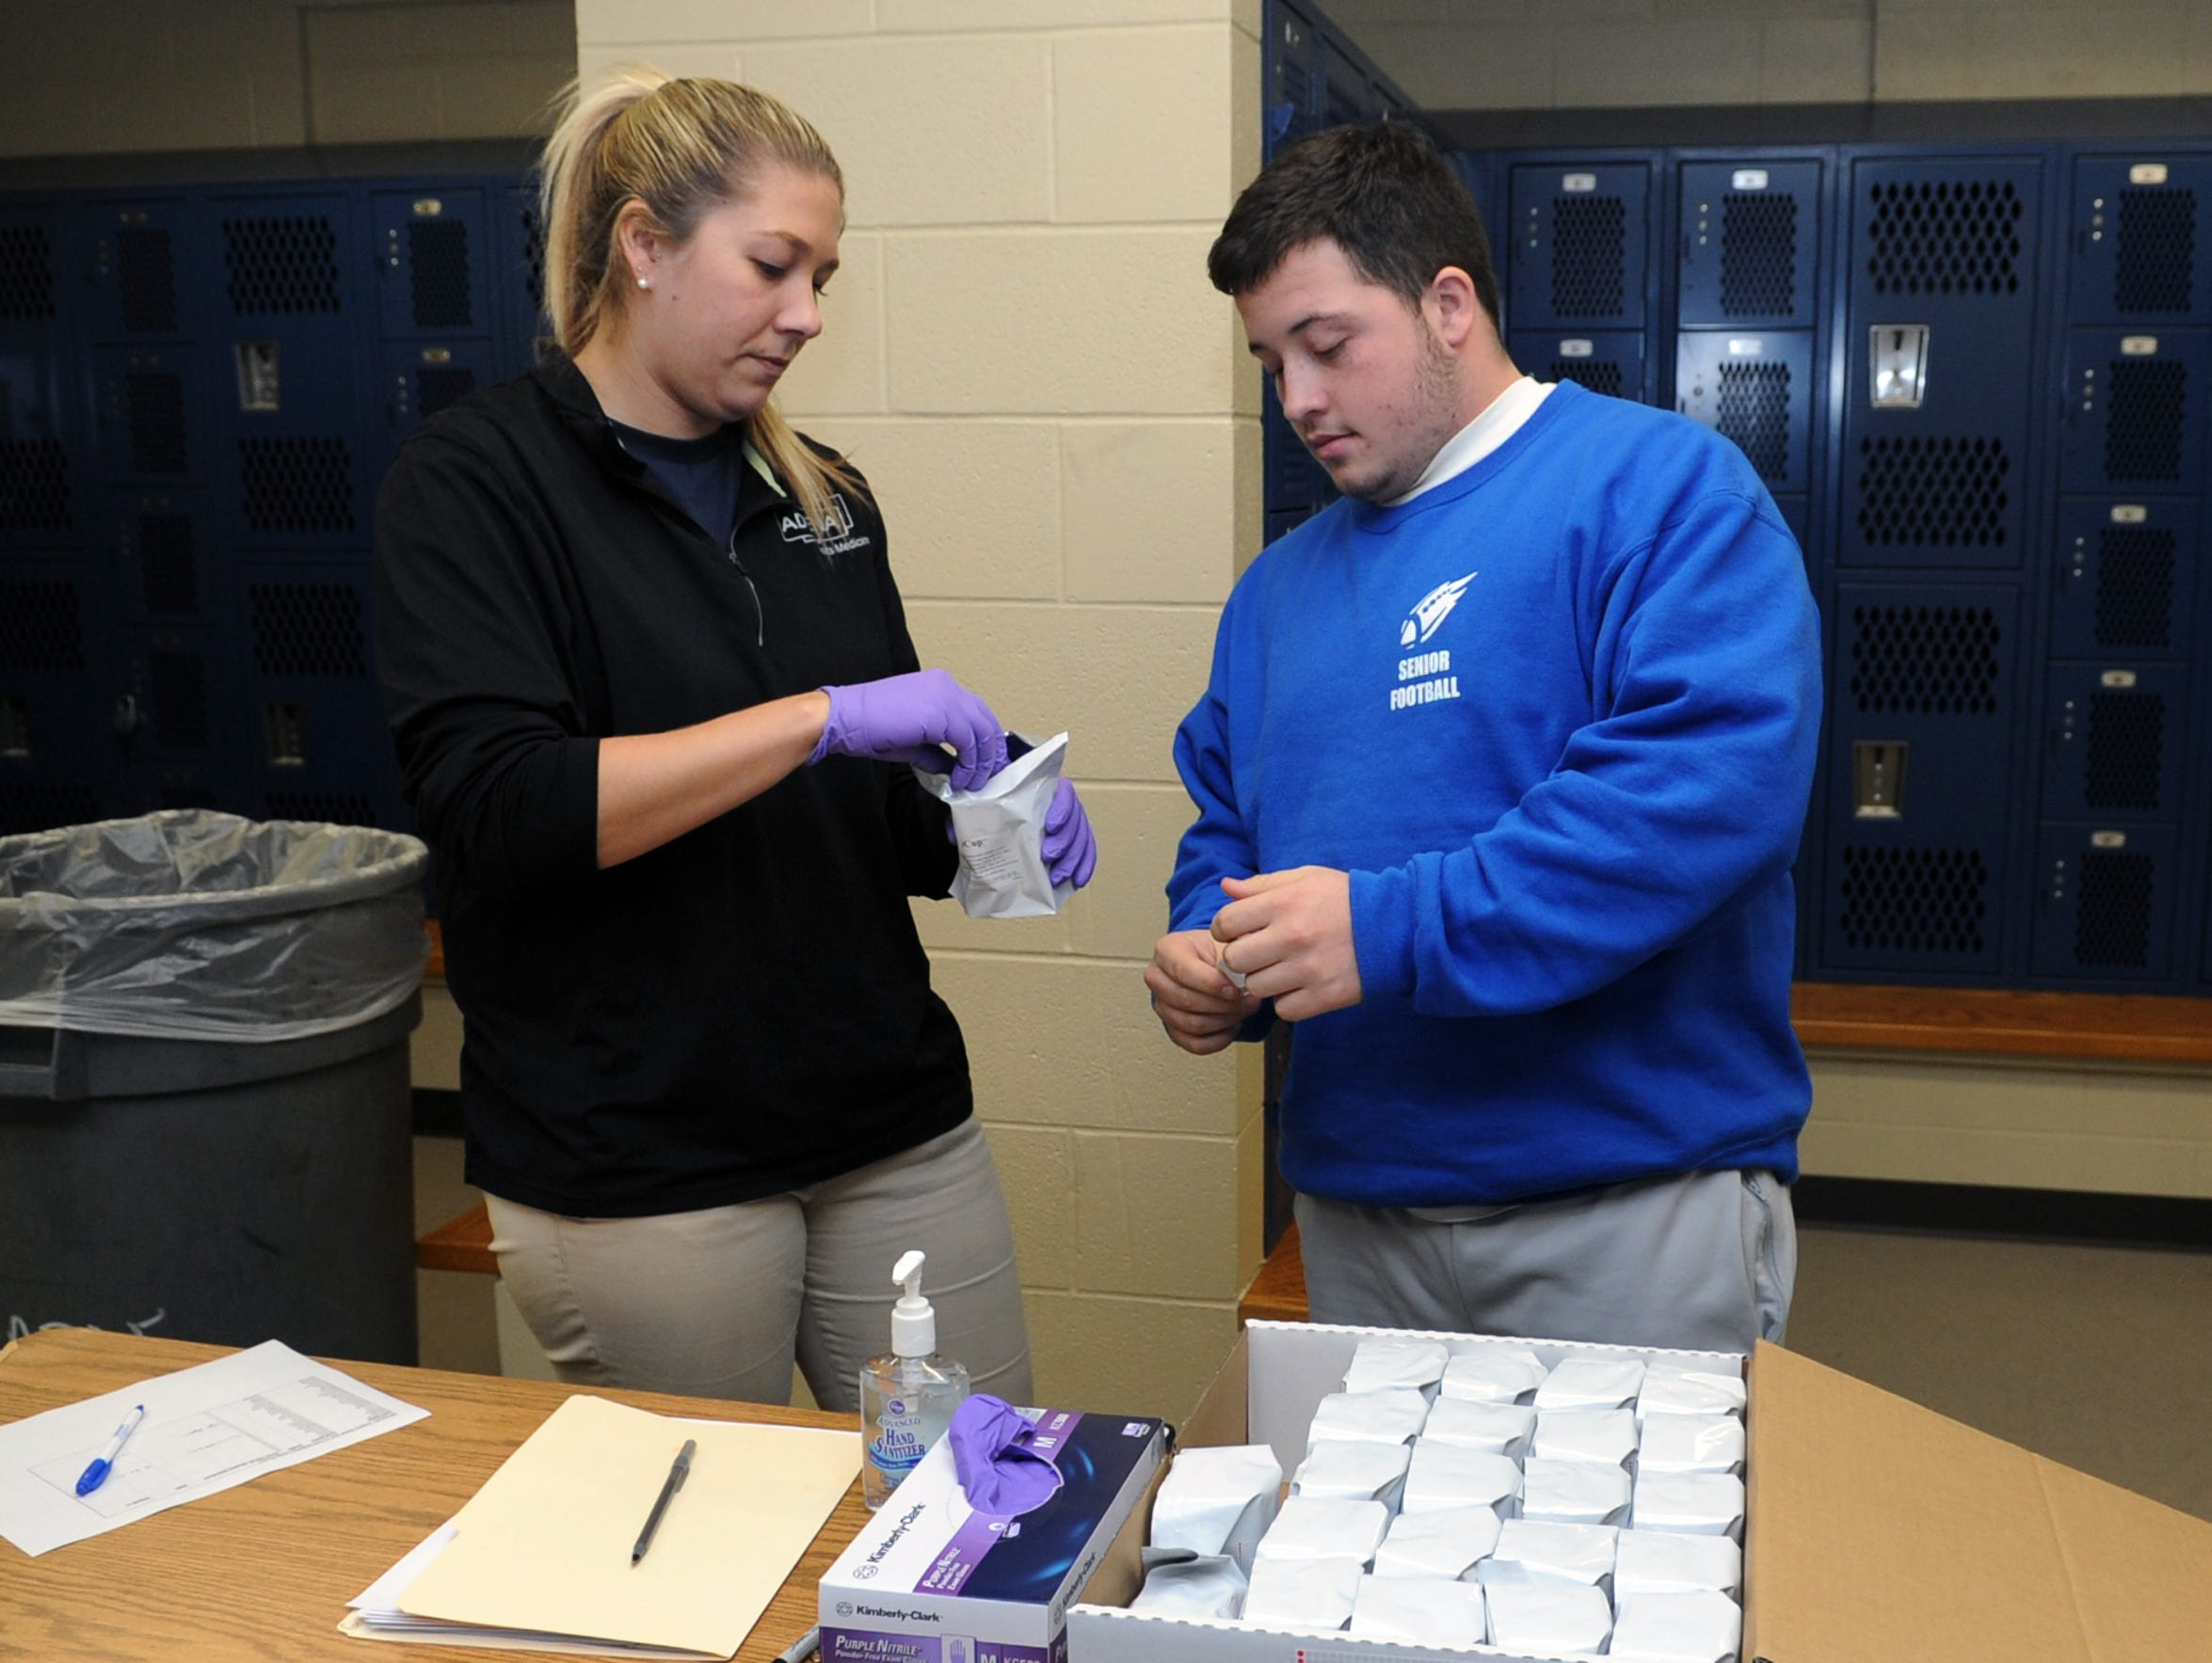 Leo Woods prepares to take a drug test with assistance